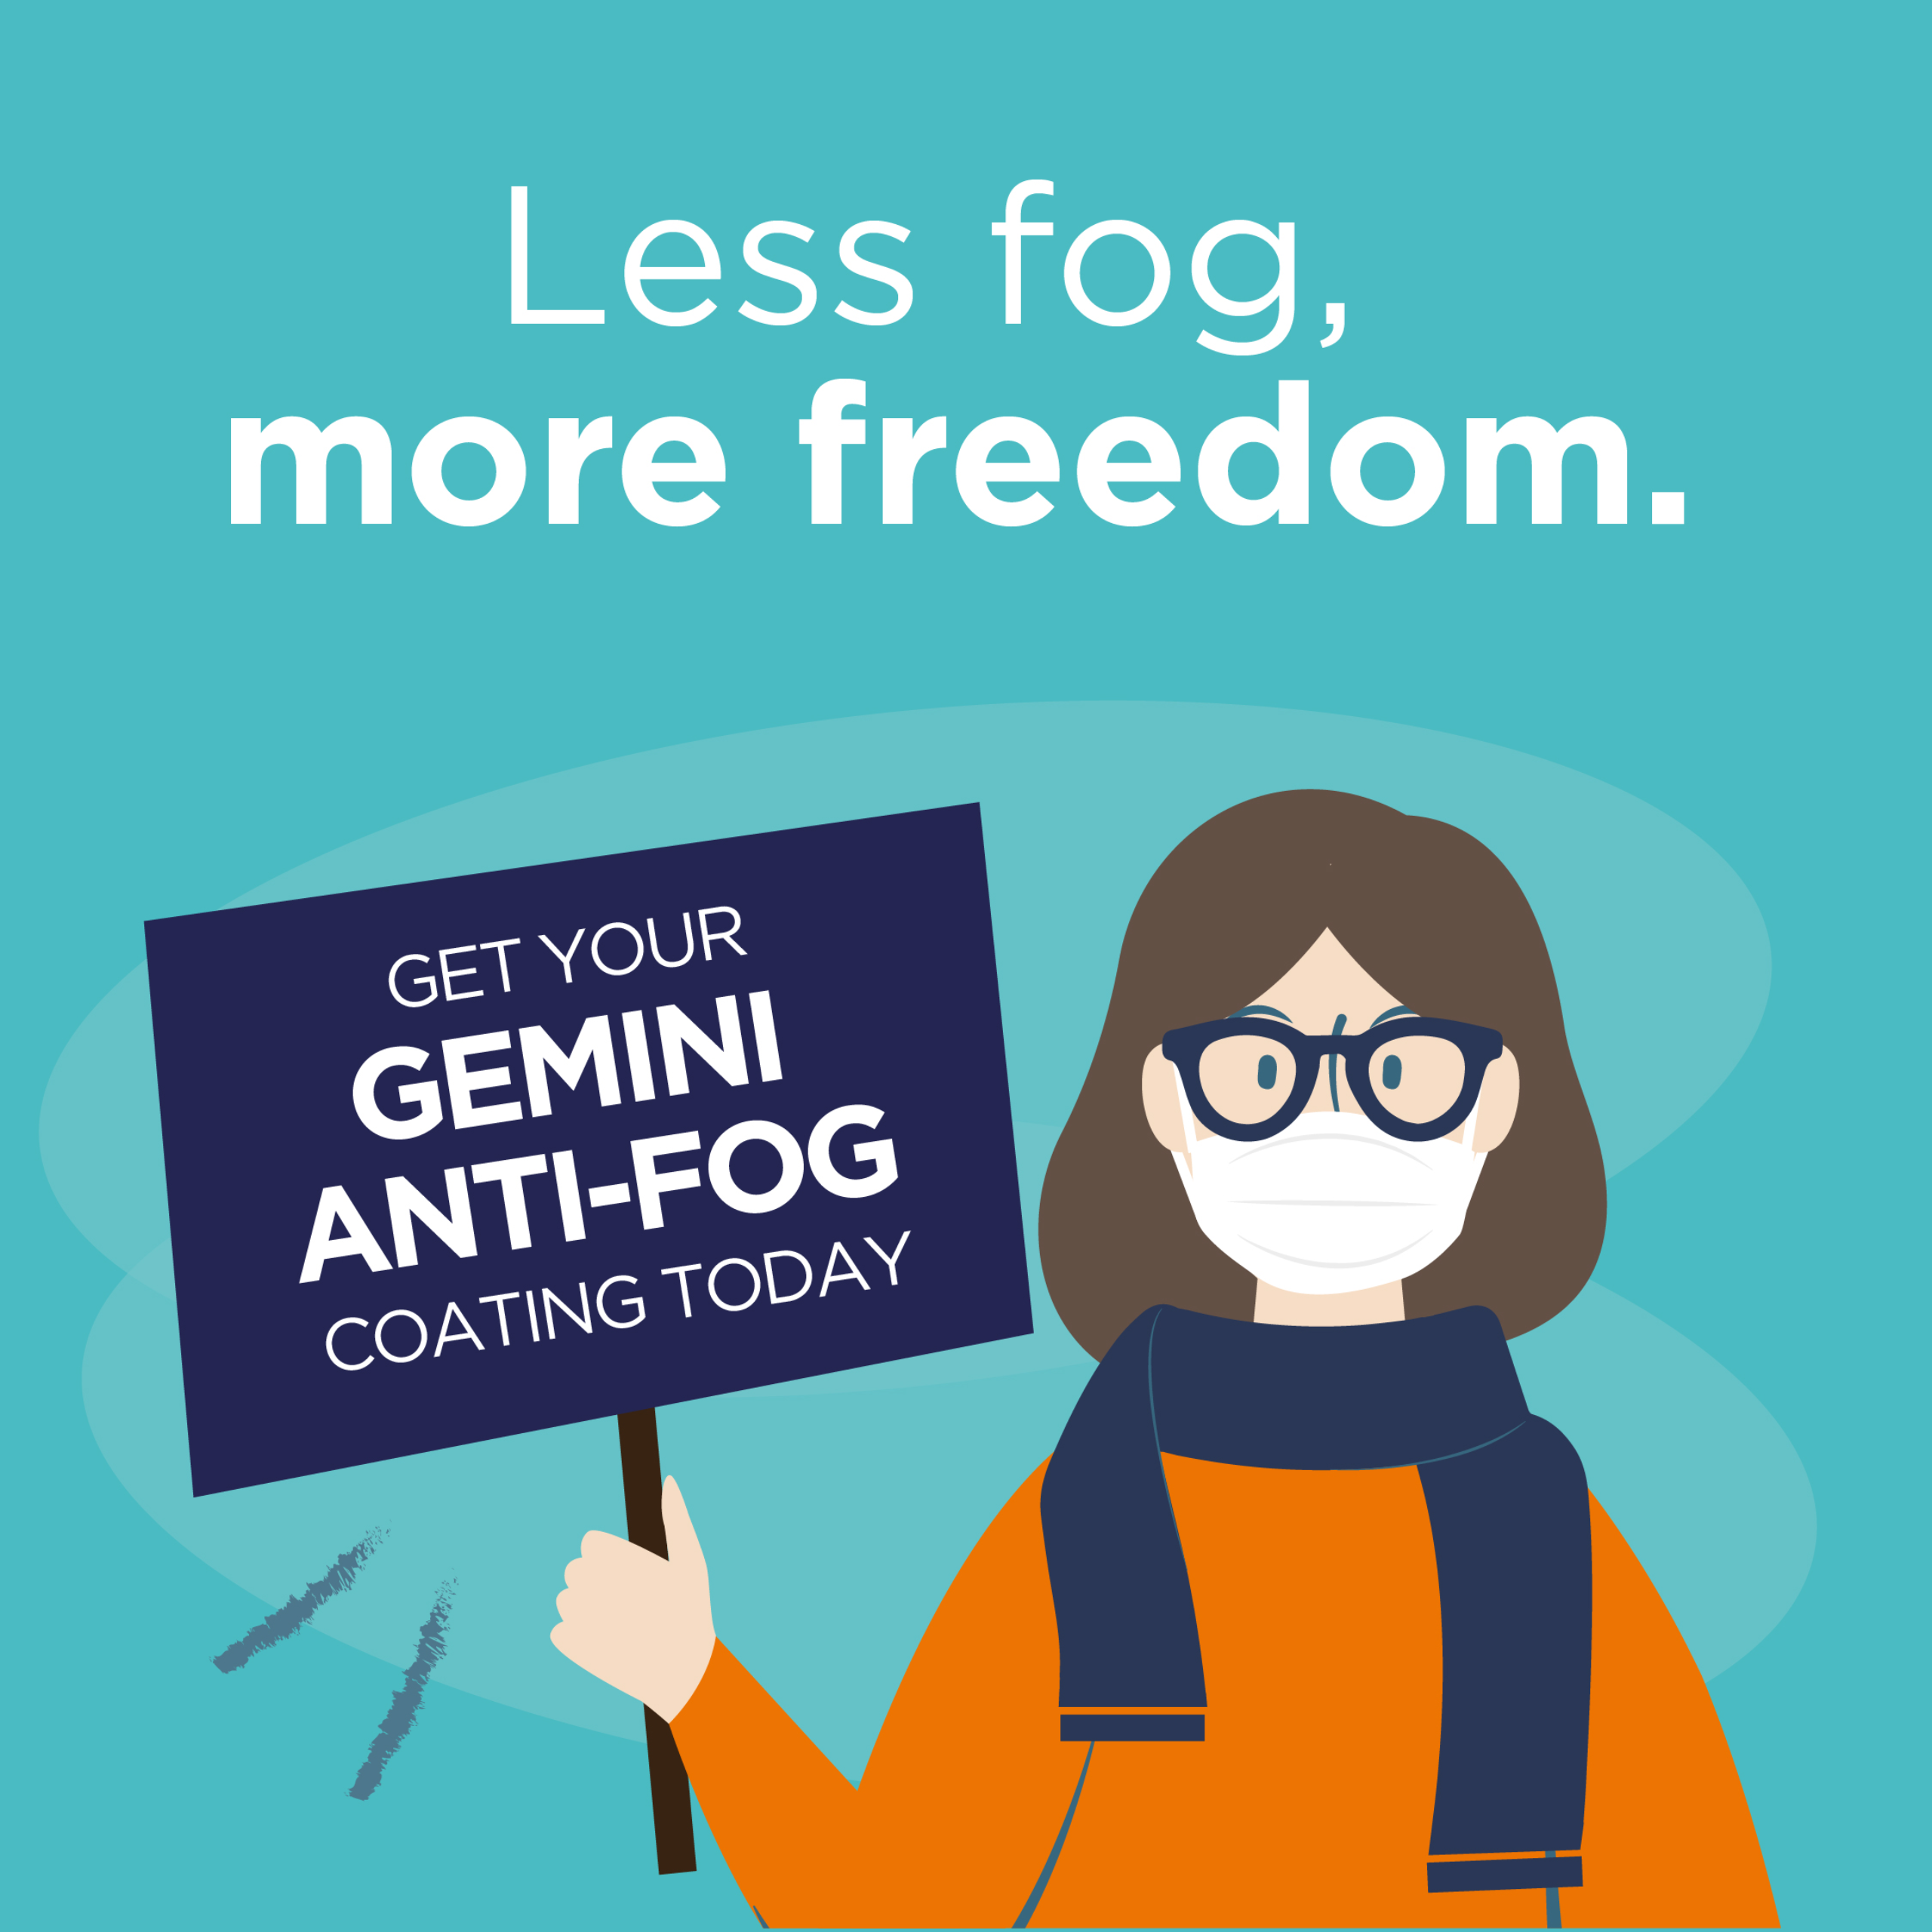 Competition - Win an Anti Fog Coating